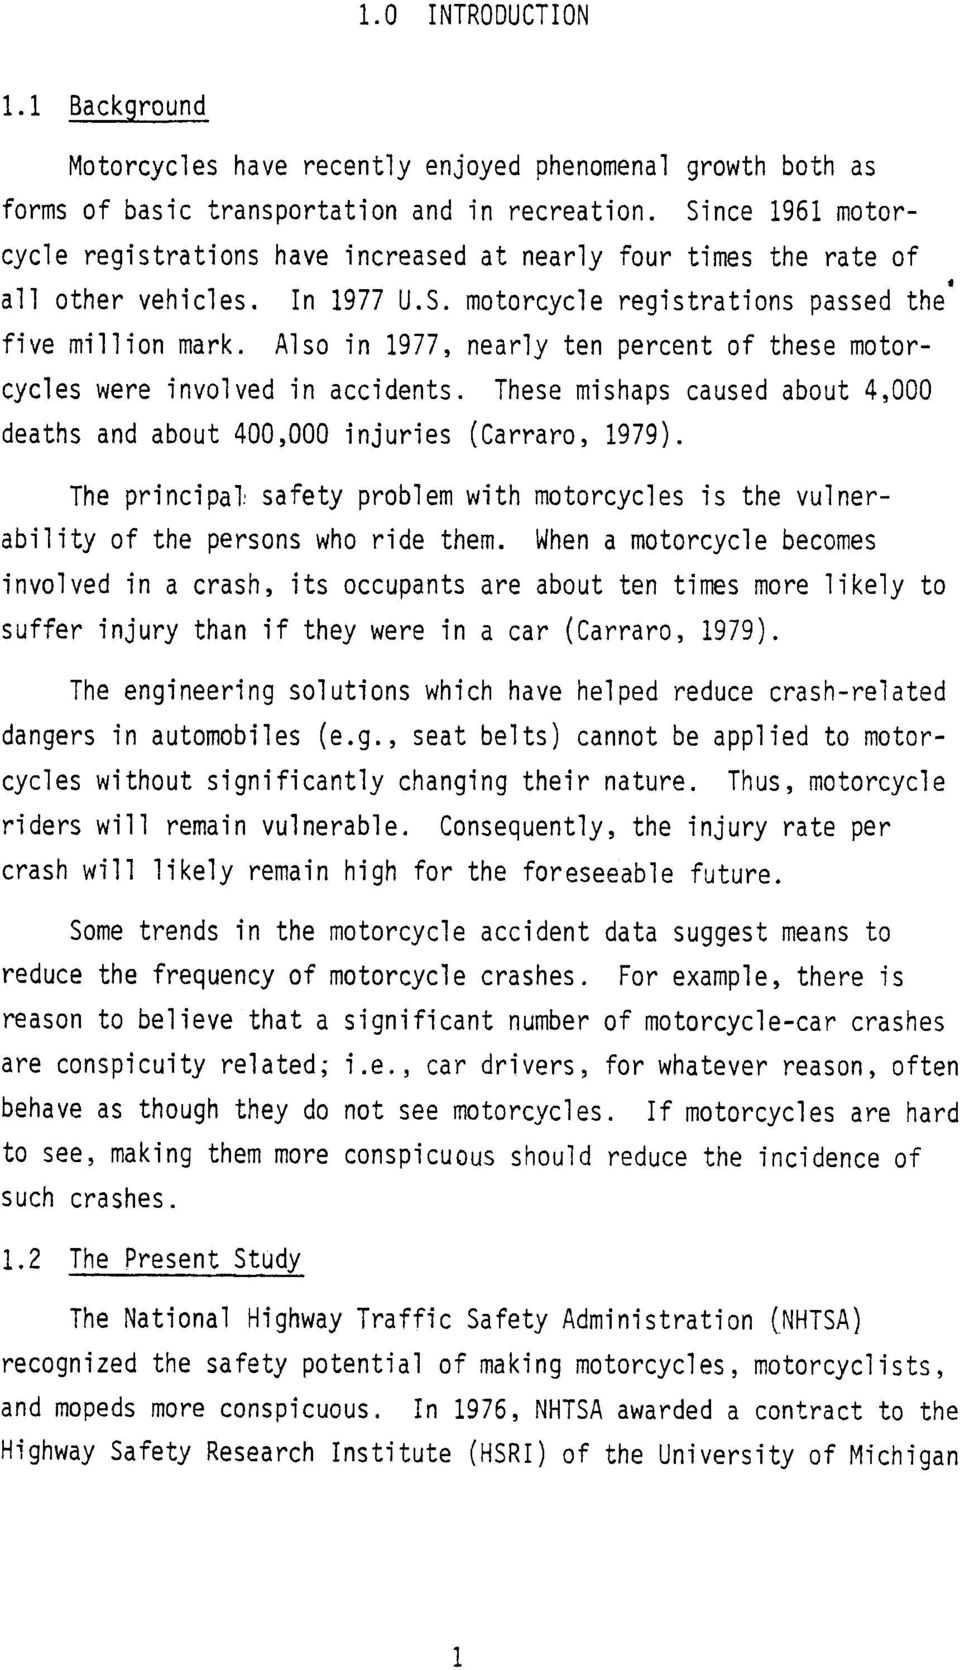 Also in 1977, nearly ten percent of these motorcycles were involved in accidents. These mishaps caused about 4,000 deaths and about 400,000 injuries (Carraro, 1979).